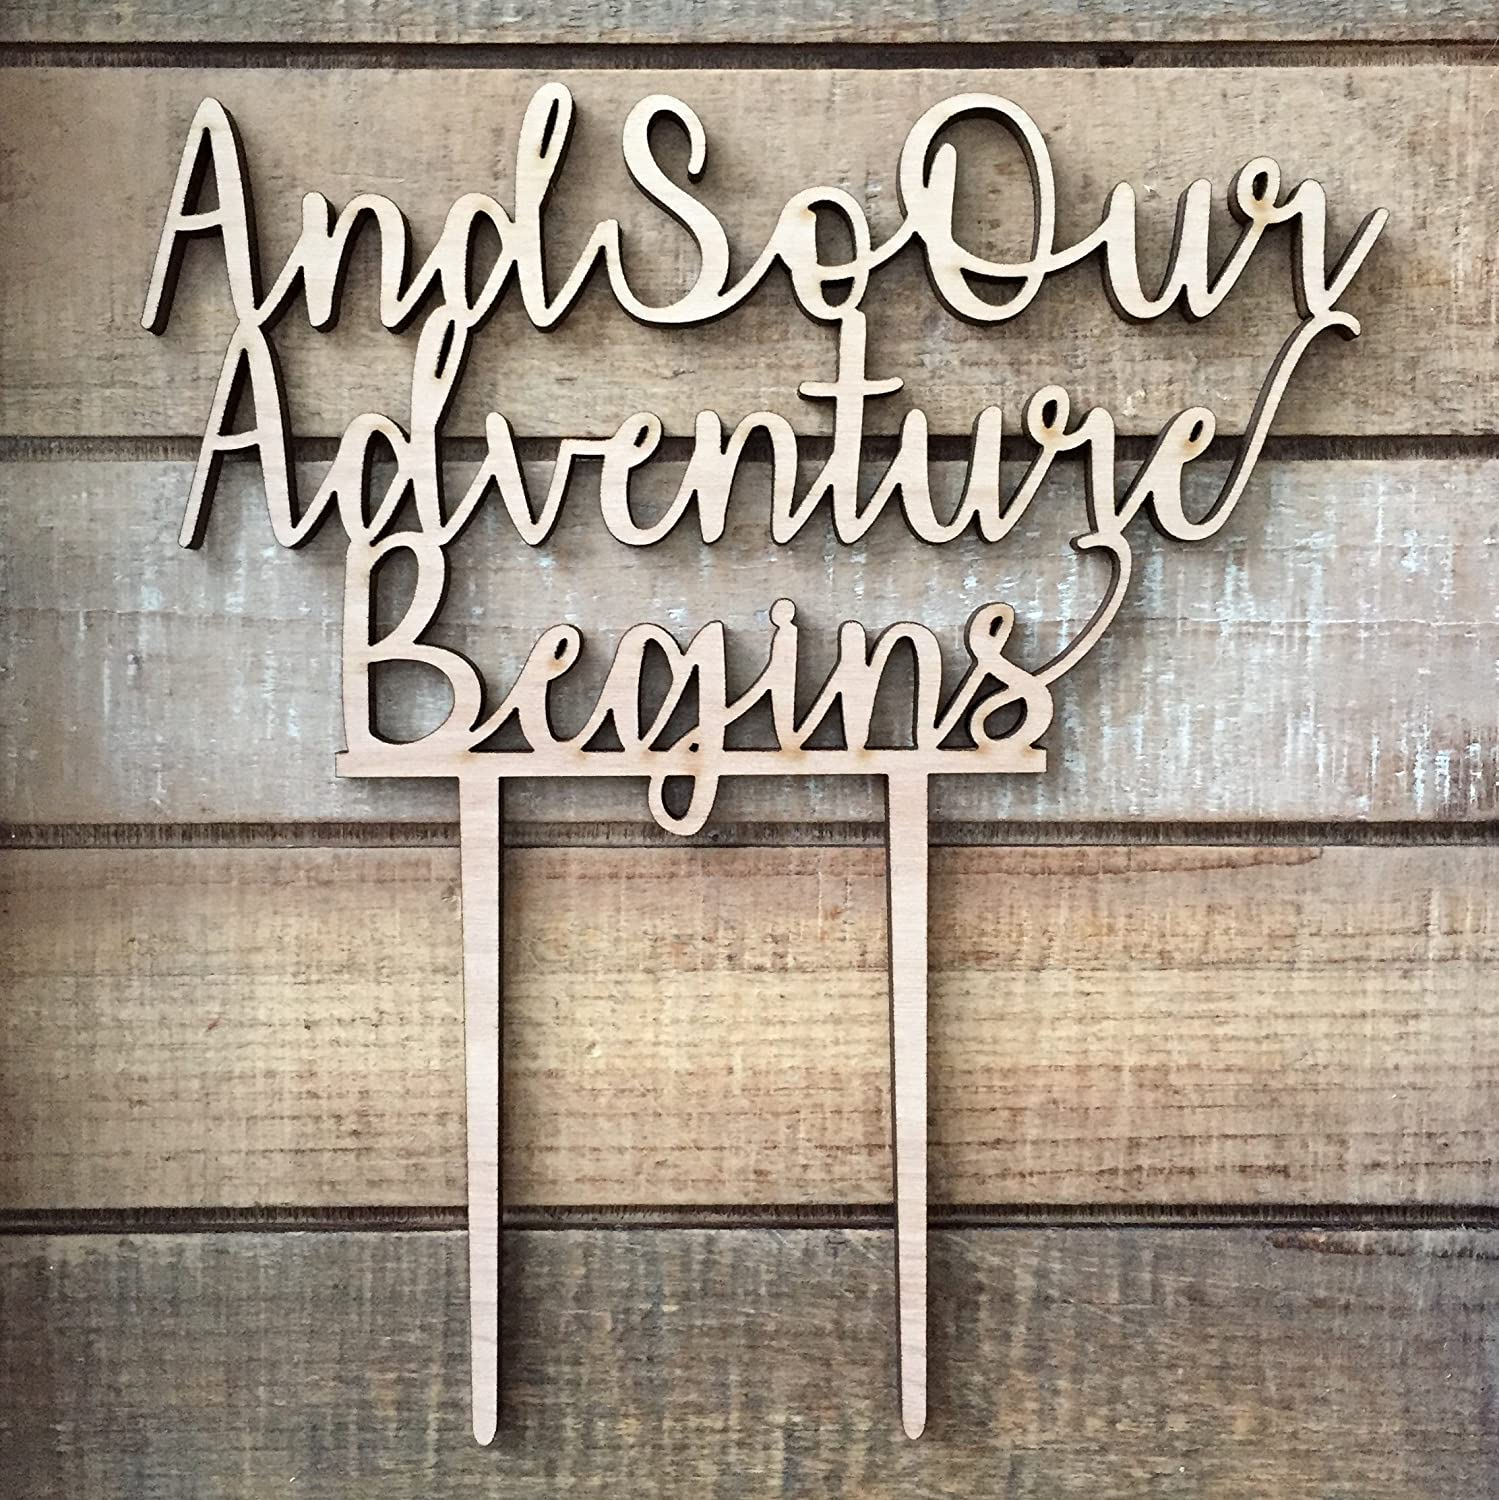 And So Our Adventure Begins Wedding Cake Topper - And So Our Adventure Begins Cake Topper - Wedding Cake Decoration - Wood Cake Topper